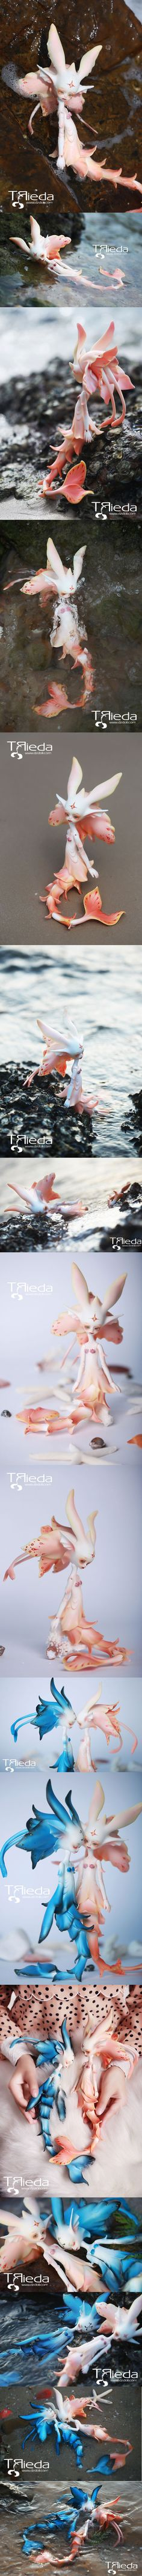 BJD Trieda 35cm Boll-jointed doll_Special DOll_DOLLZONE_DOLL_Ball Jointed Dolls (BJD) company-Legenddoll